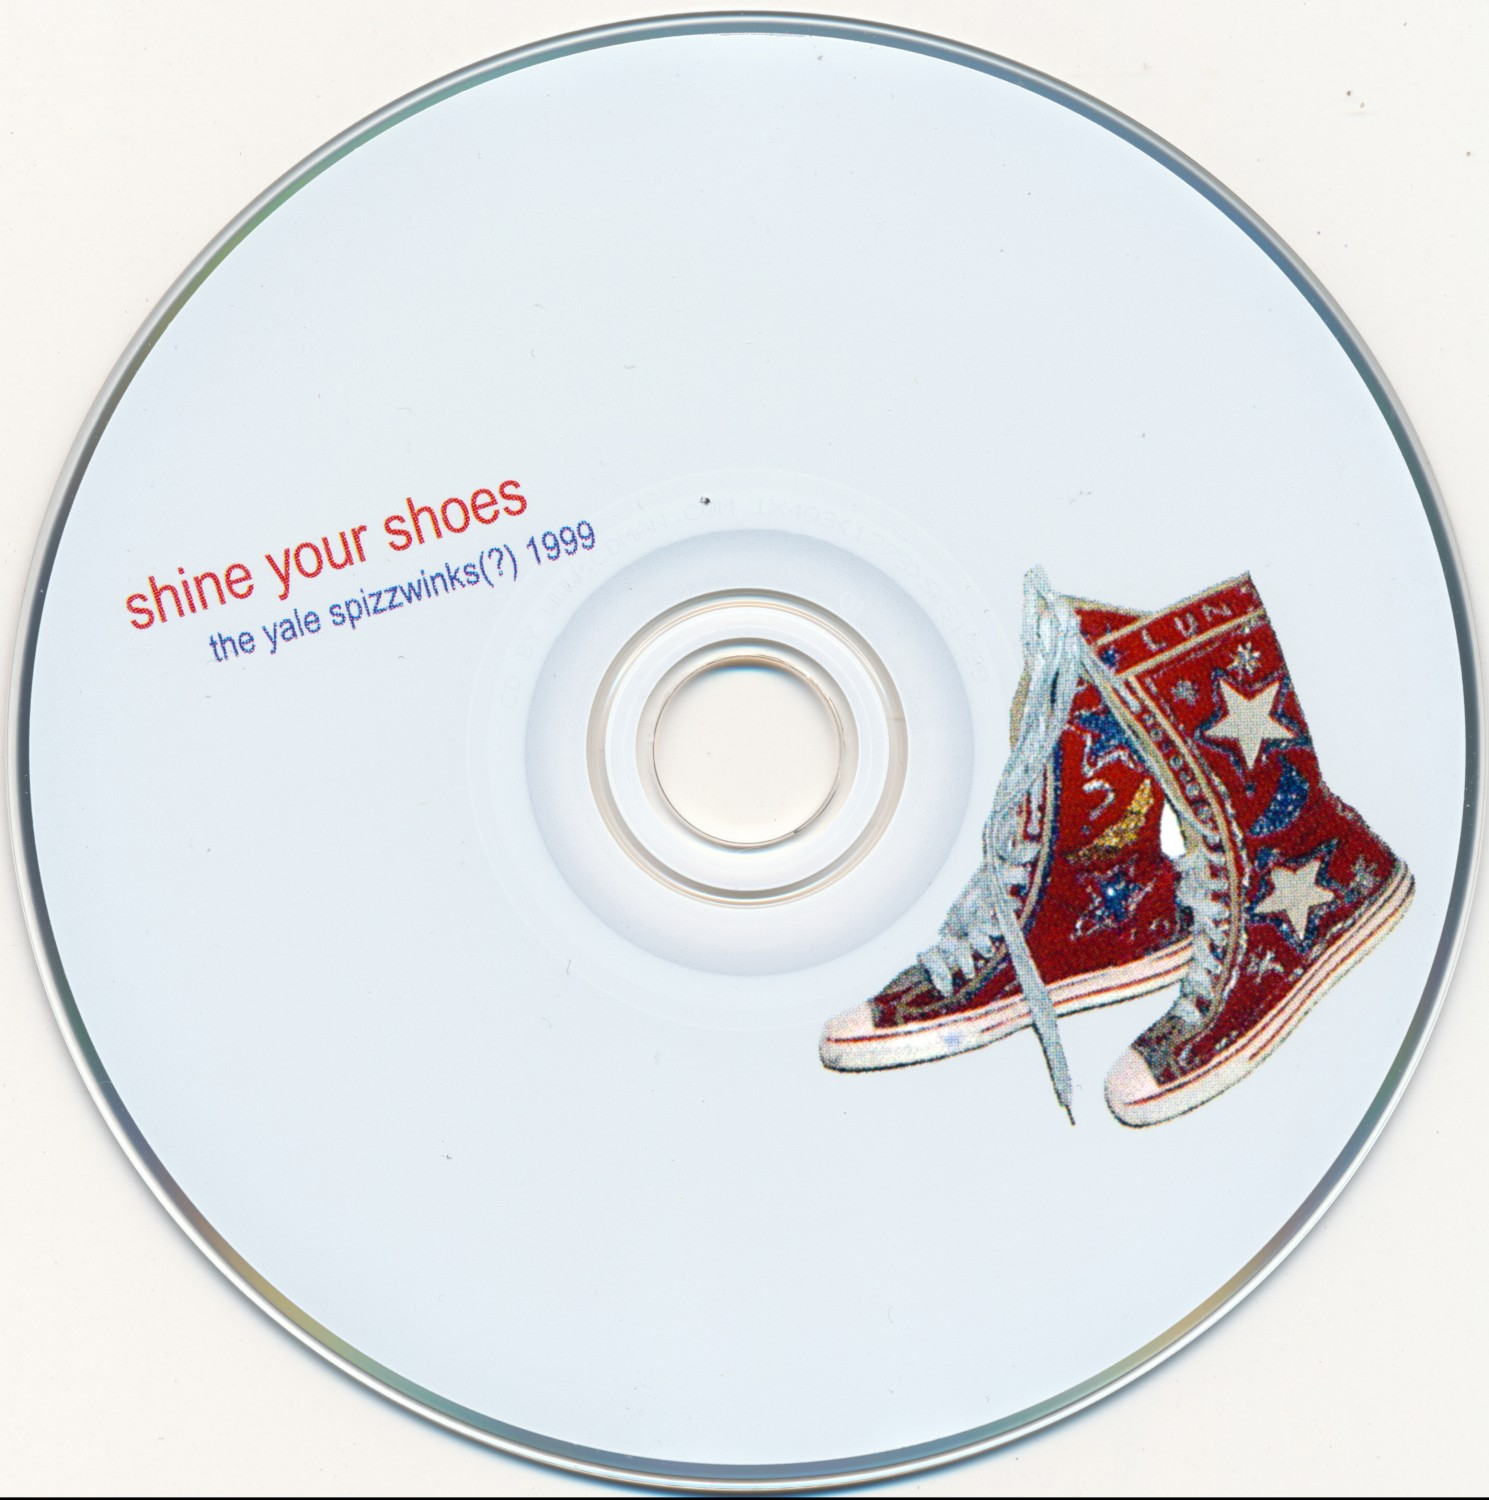 1999 Shine Your Shoes - disc